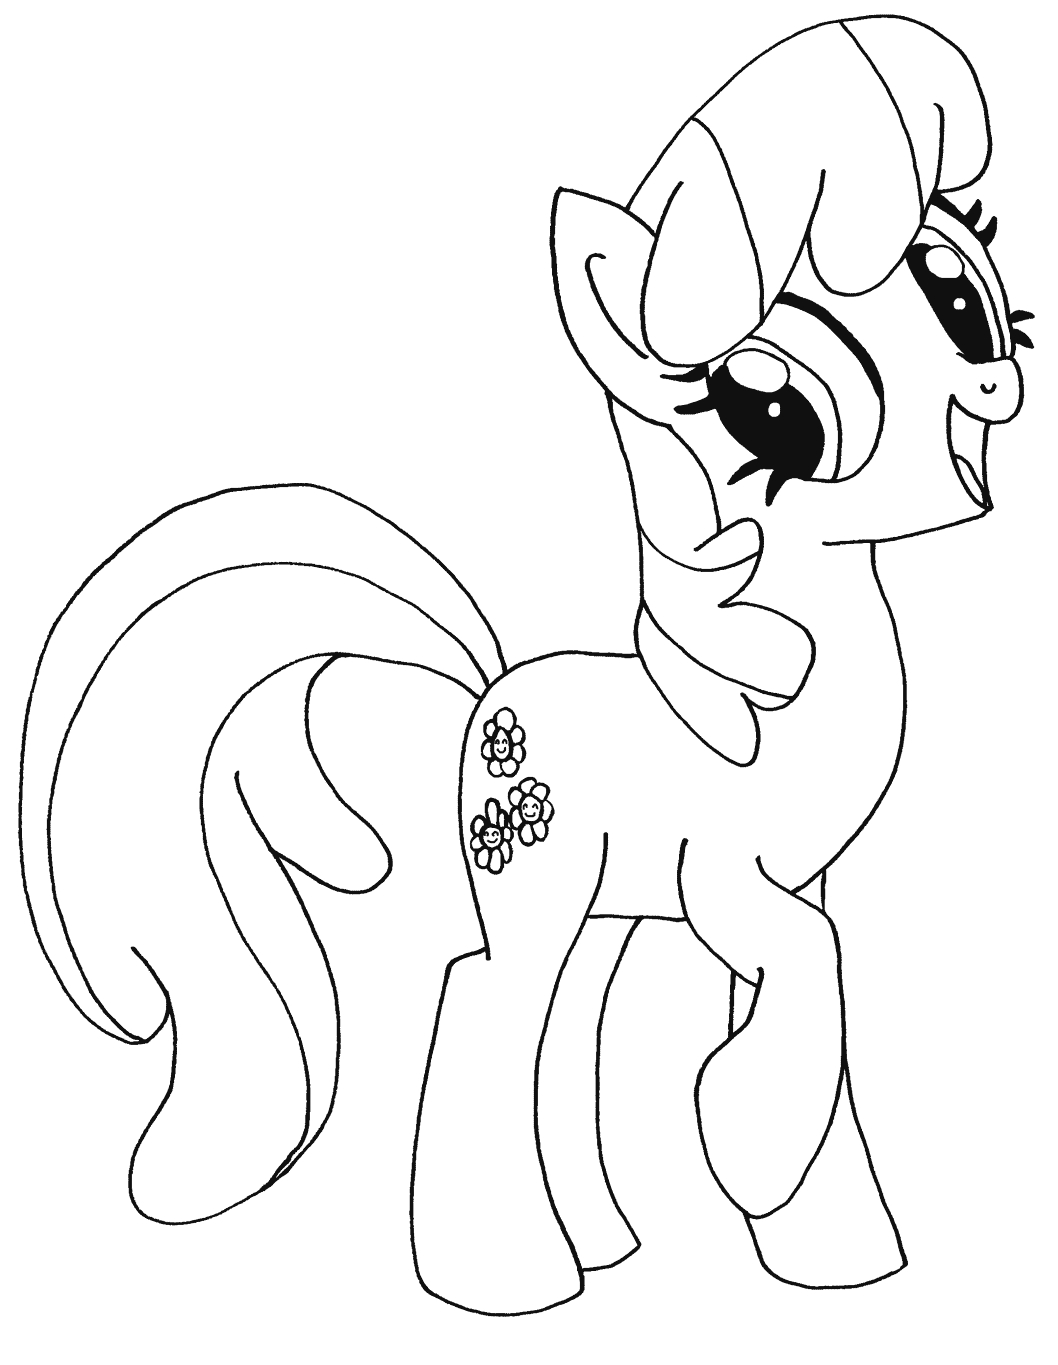 Mlp Coloring Cloudy Quartz  Coloring Page